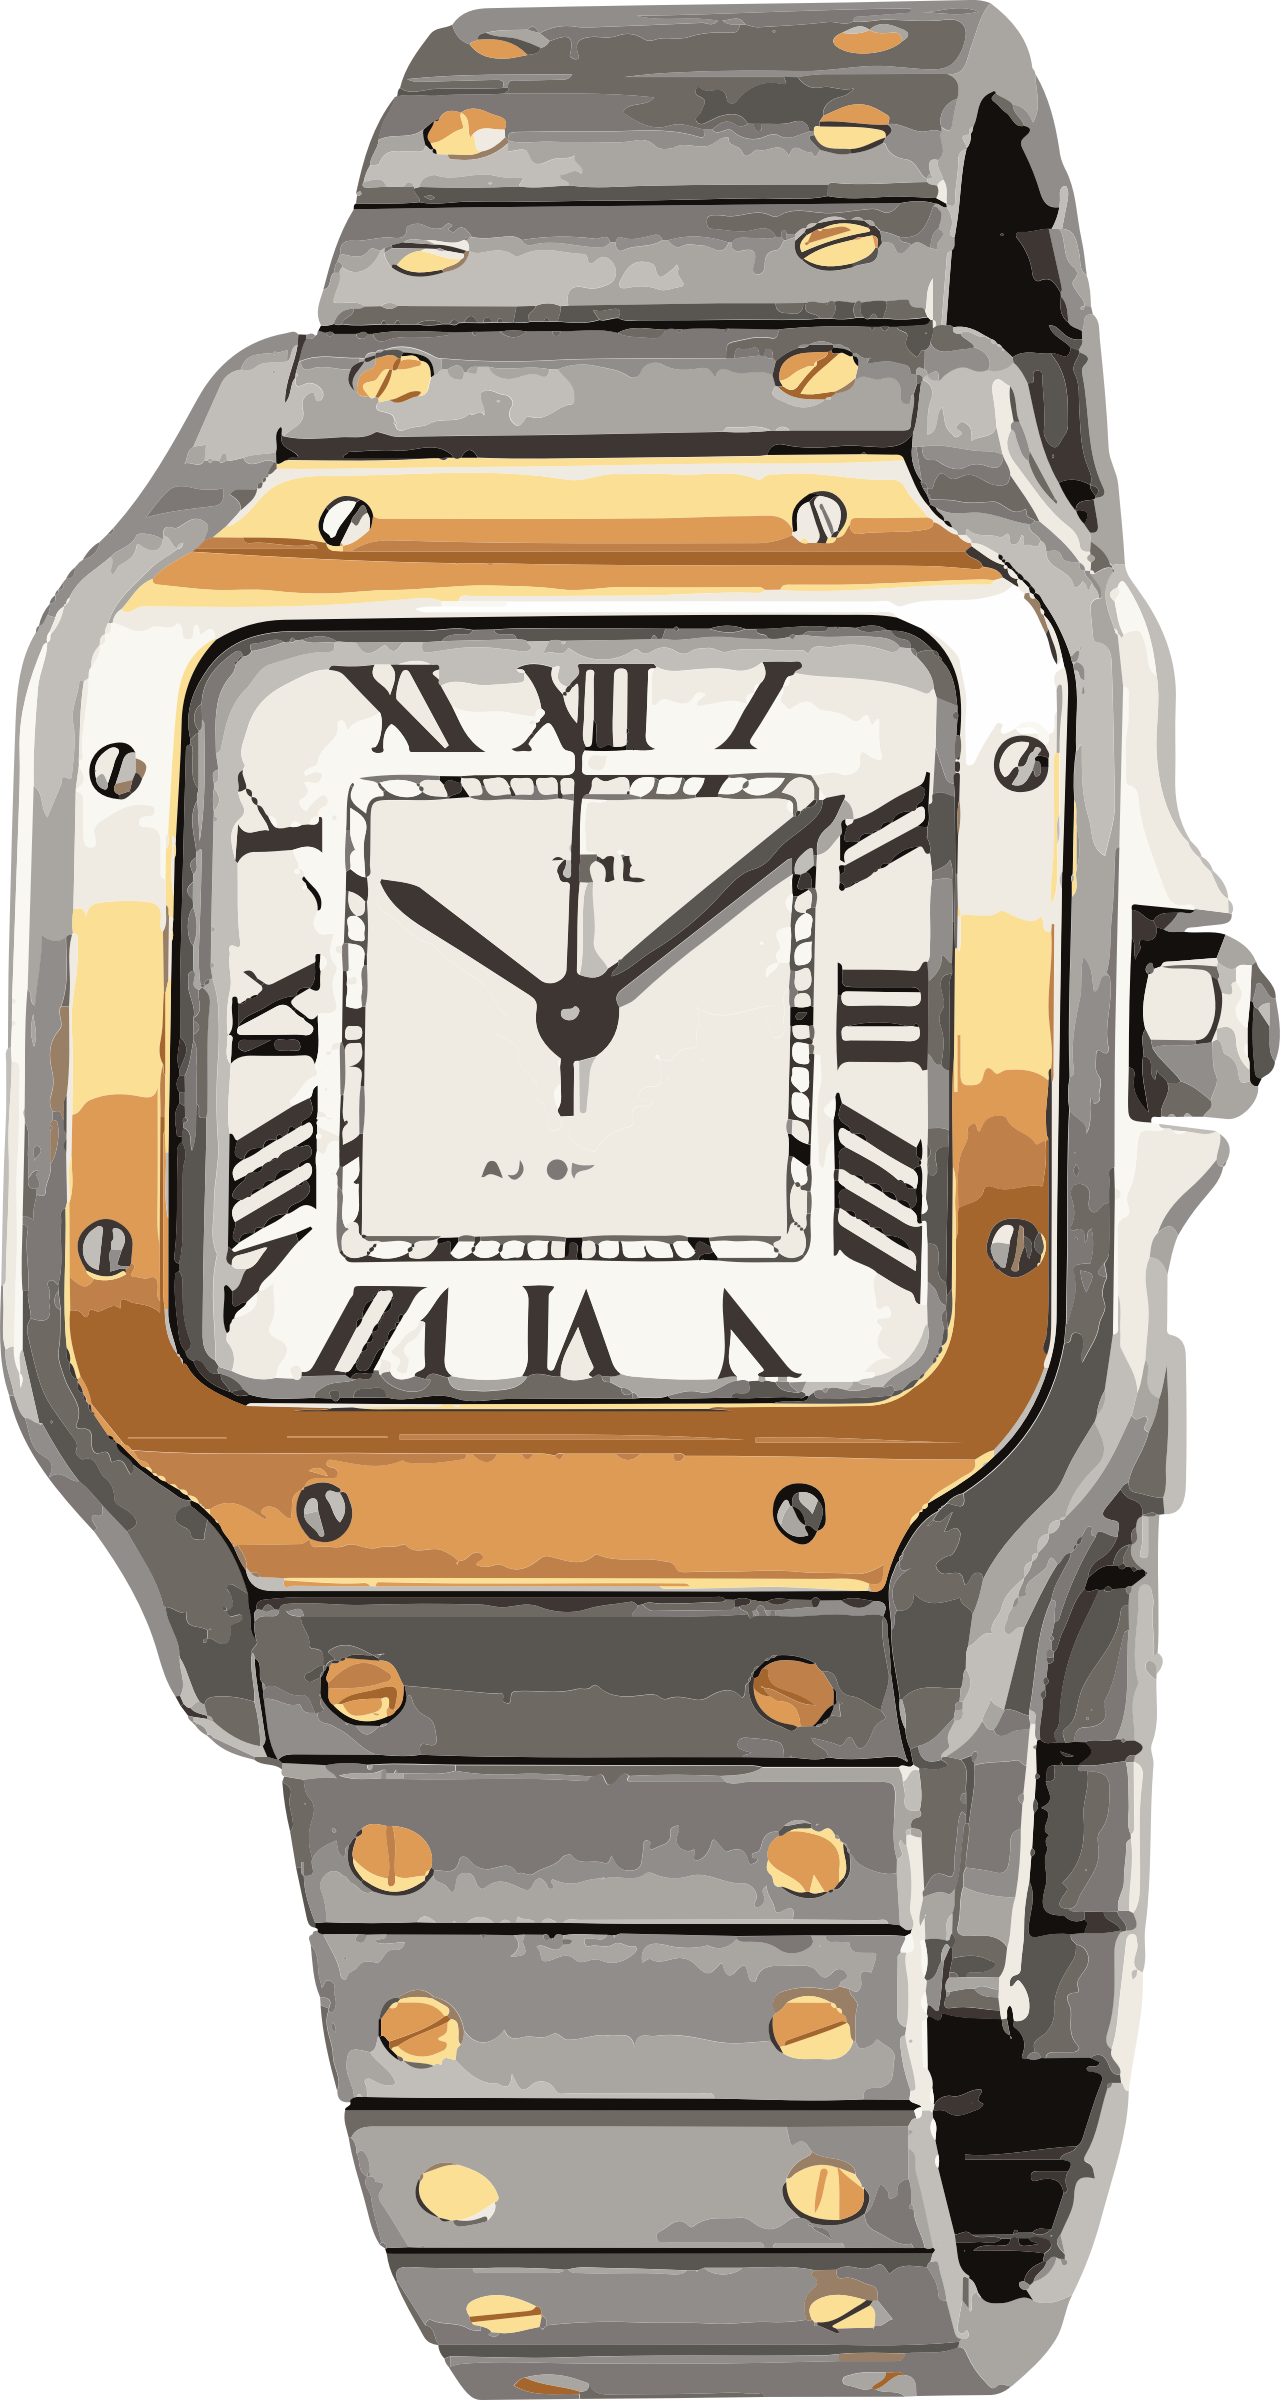 swiss watch in white gold and yellow gold with screws - horlogerie by swissboy